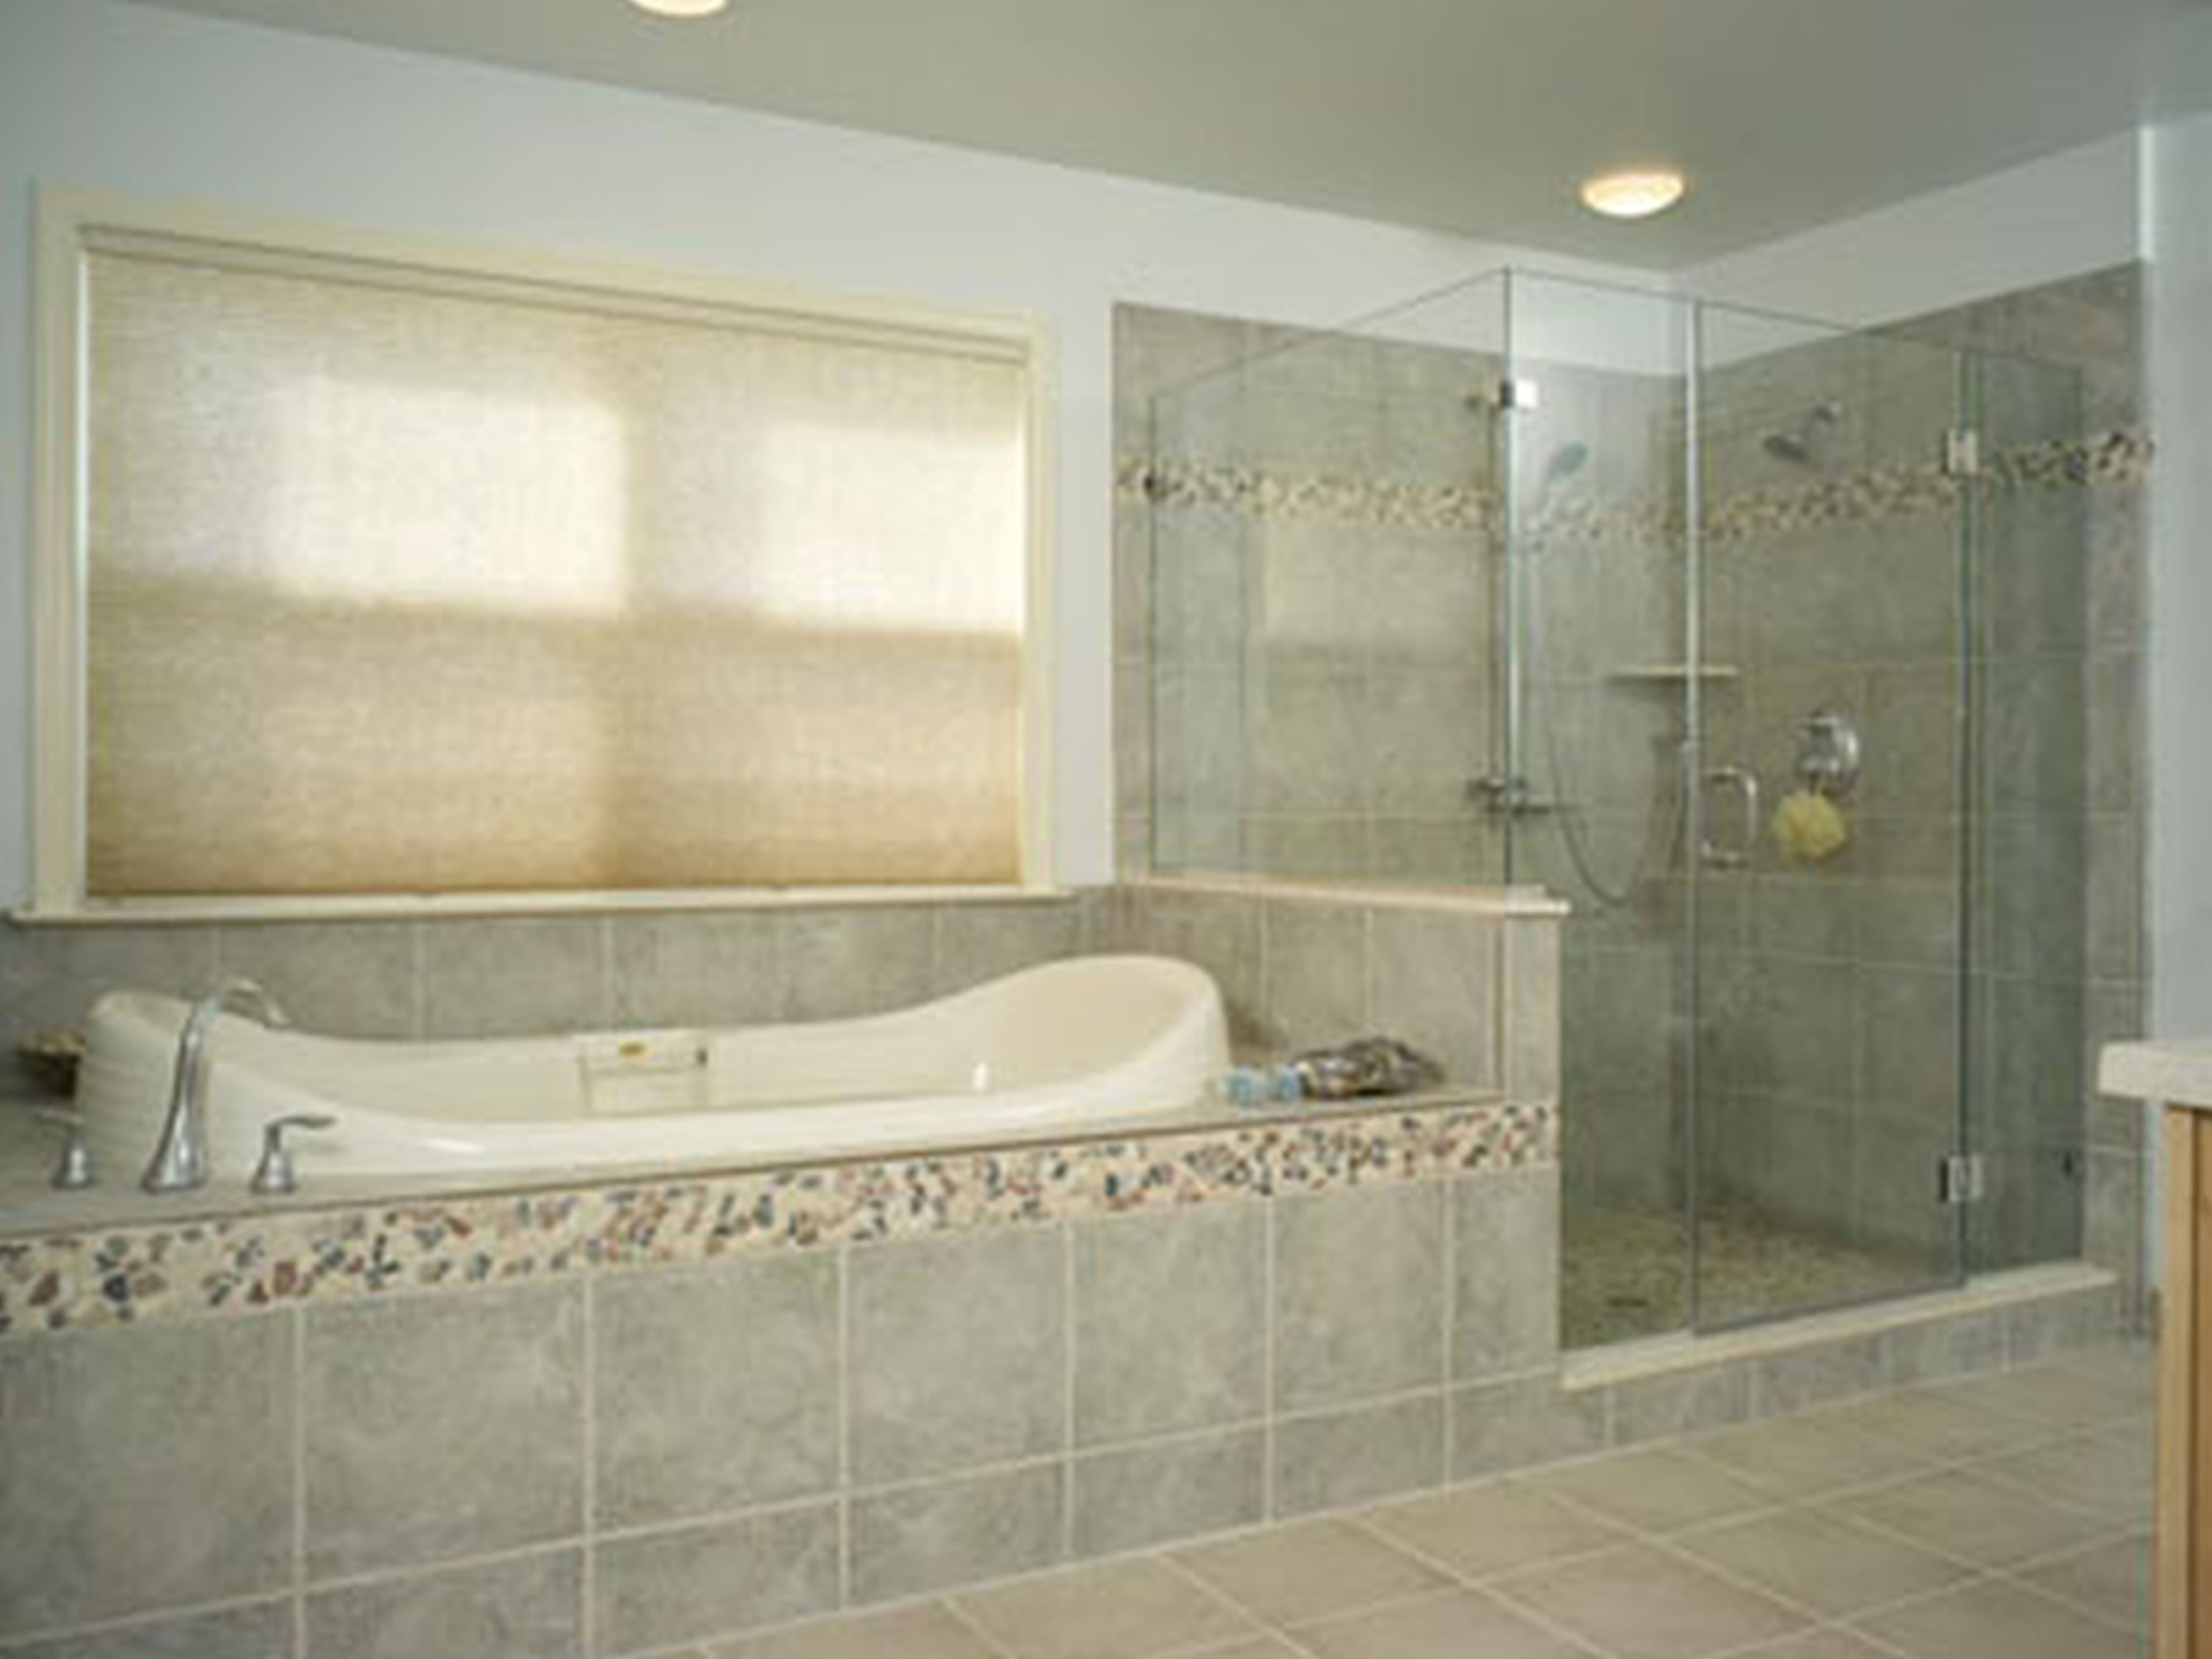 10 Most Recommended Master Bathroom Ideas Photo Gallery master bathroom tile ideas tacoy image designs